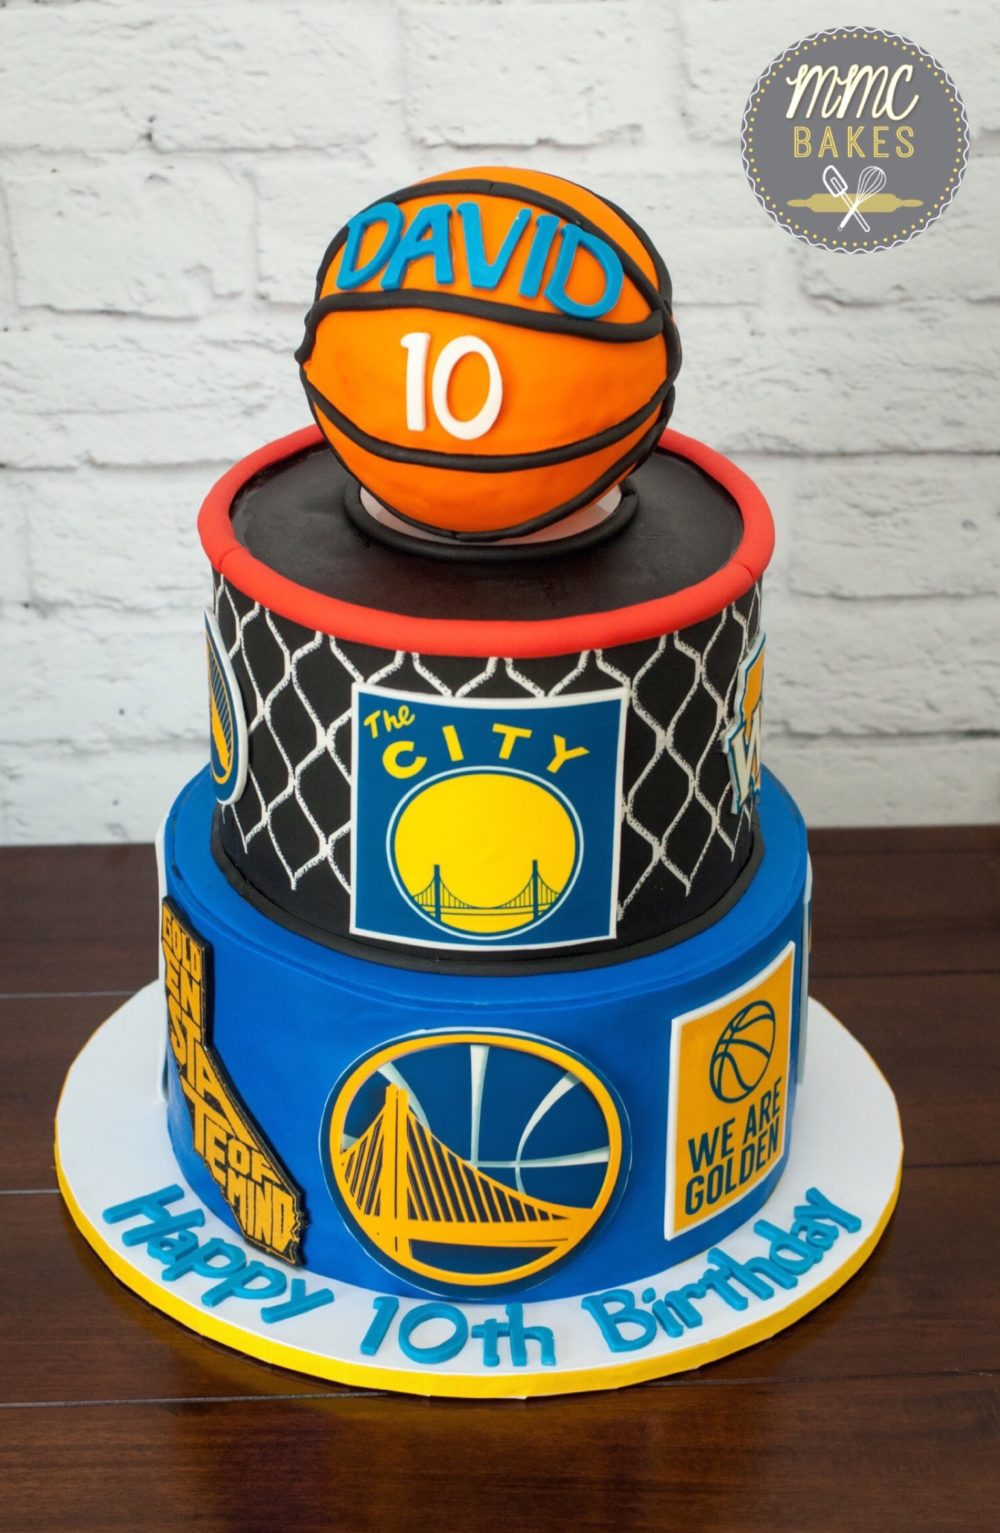 golden state warriors cake, basketball cake, warriors cake, golden state warriors cake, the city cake, golden state of mind cake, san diego, chula vista, custom cakes, fondant, edible images, MMC bakes,